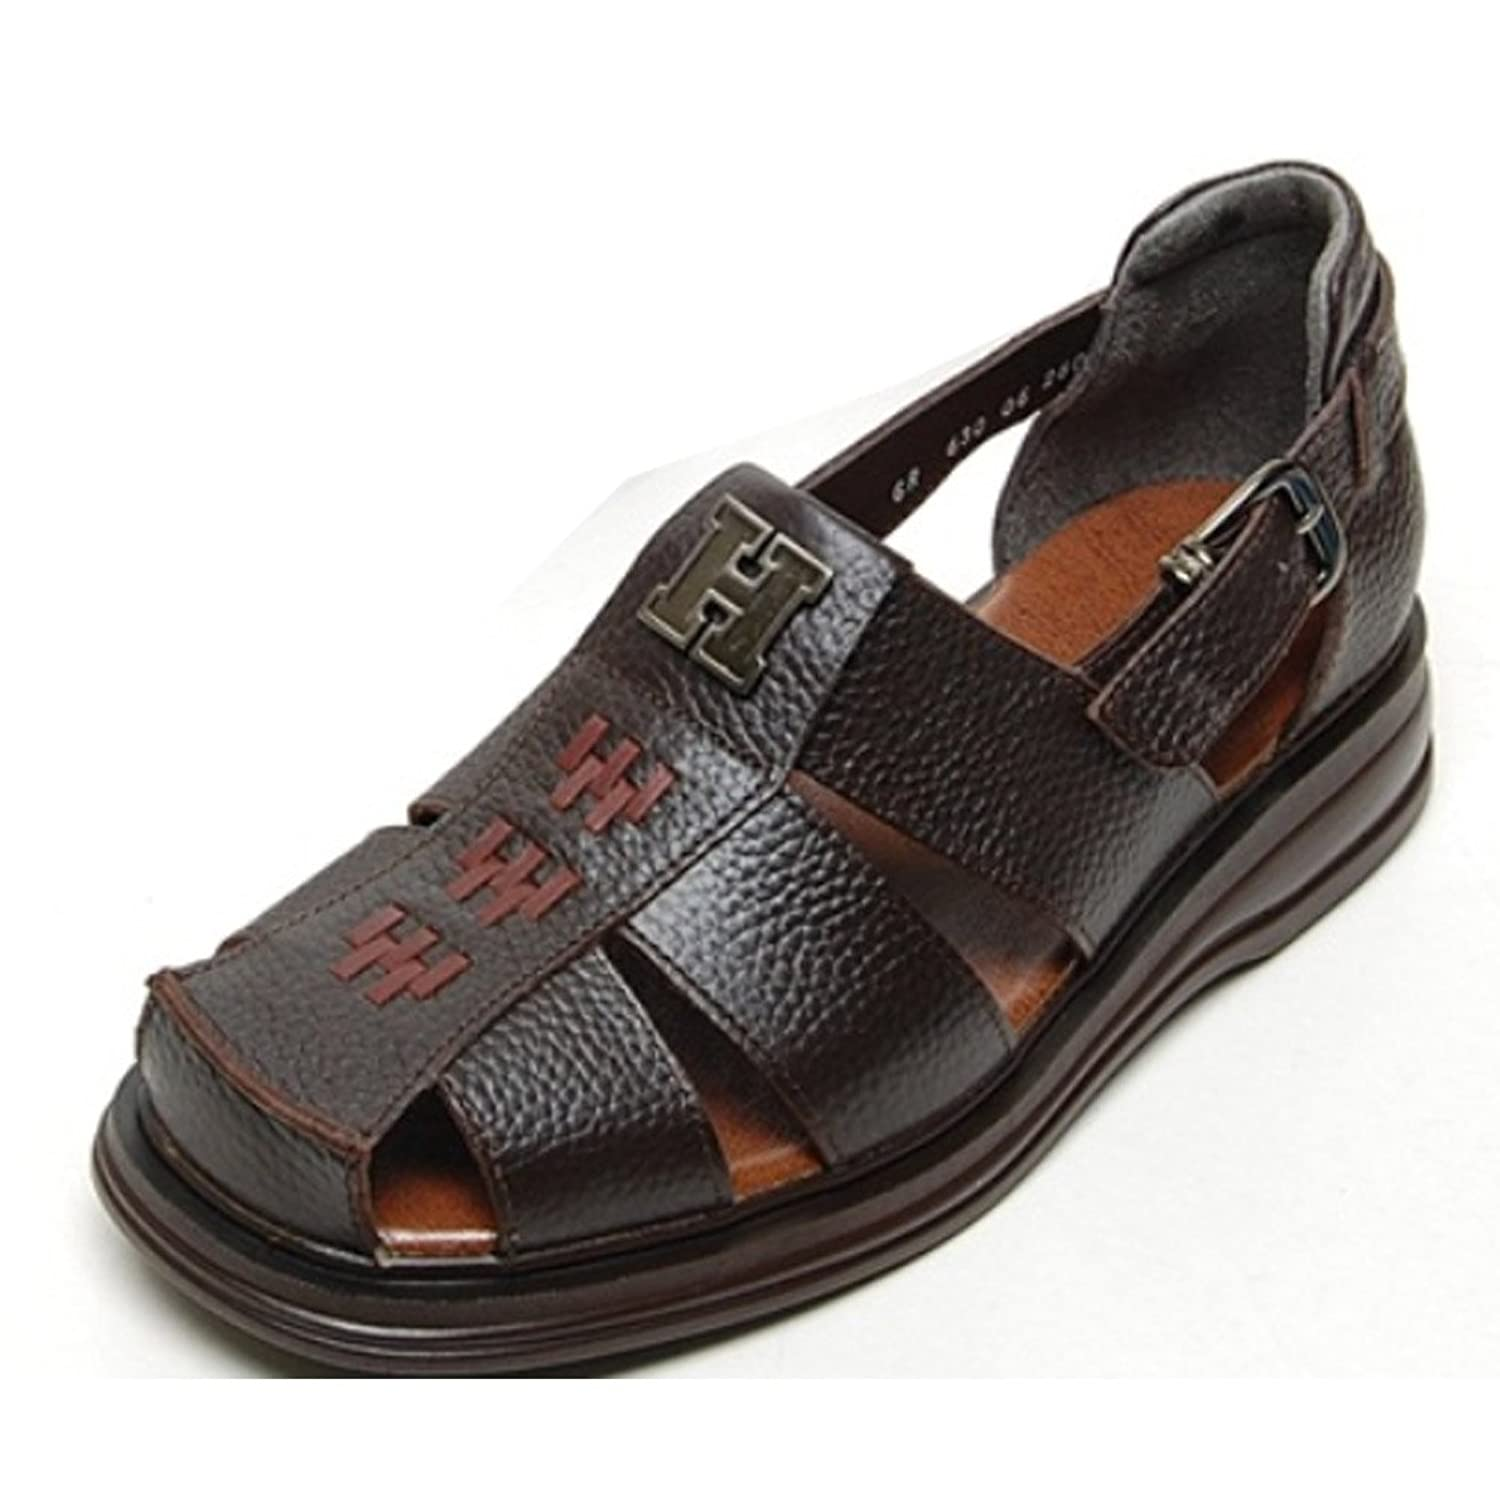 5ca958cf2e36 EpicStep Men s Genuine Leather Comfort Closed Toe Buckle Strap Fisherman  Sandals Shoes